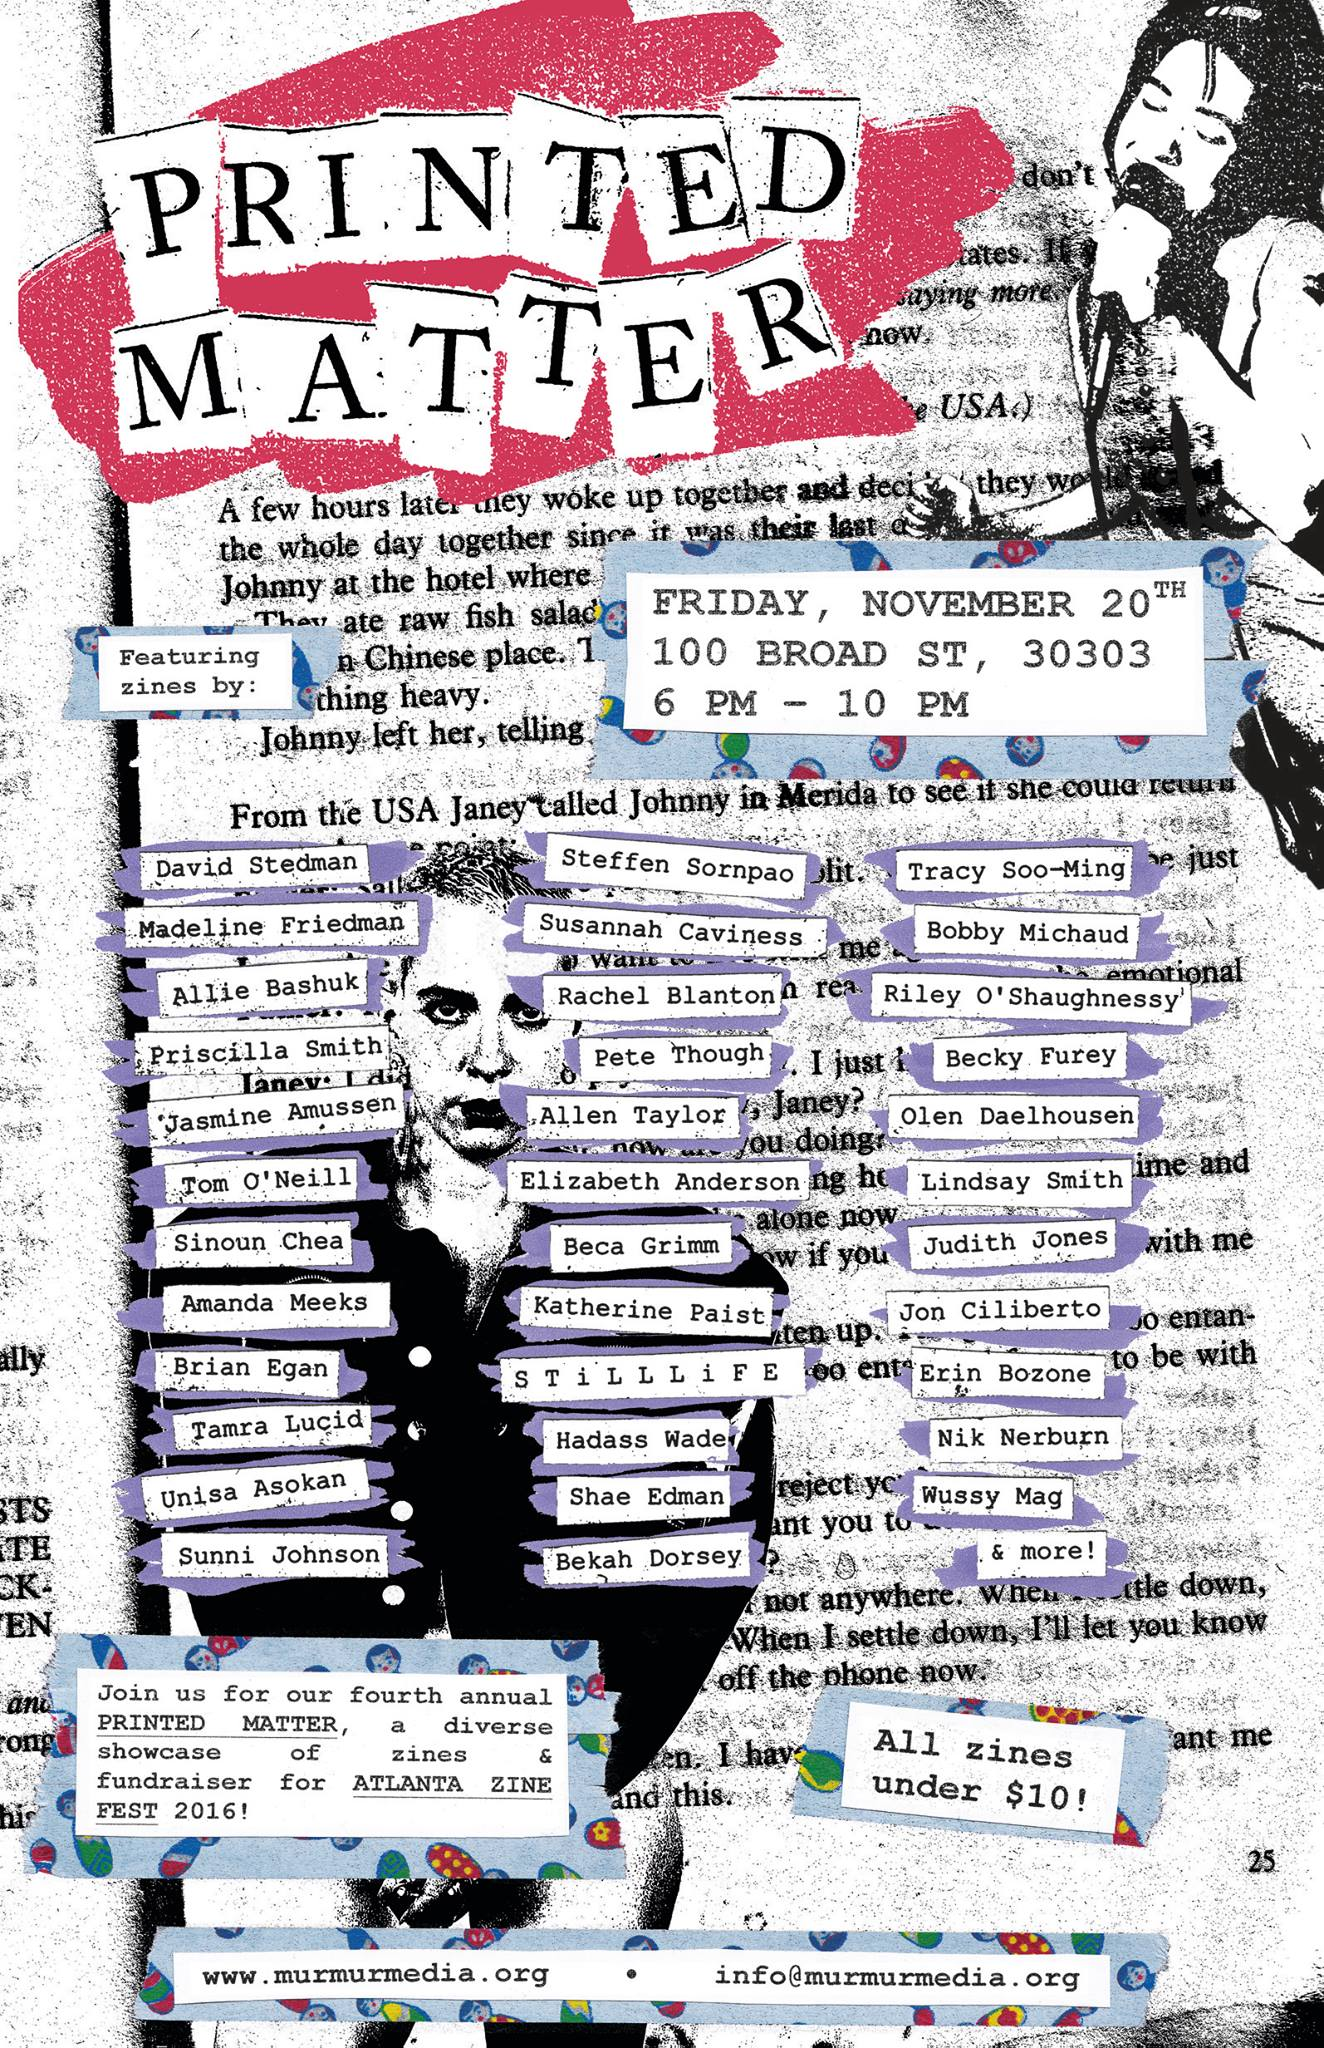 The fourth annual Printed Matter, a diverse showcase of zines and fundraiser for AZF 2016, is this Friday night at the new Murmur space.